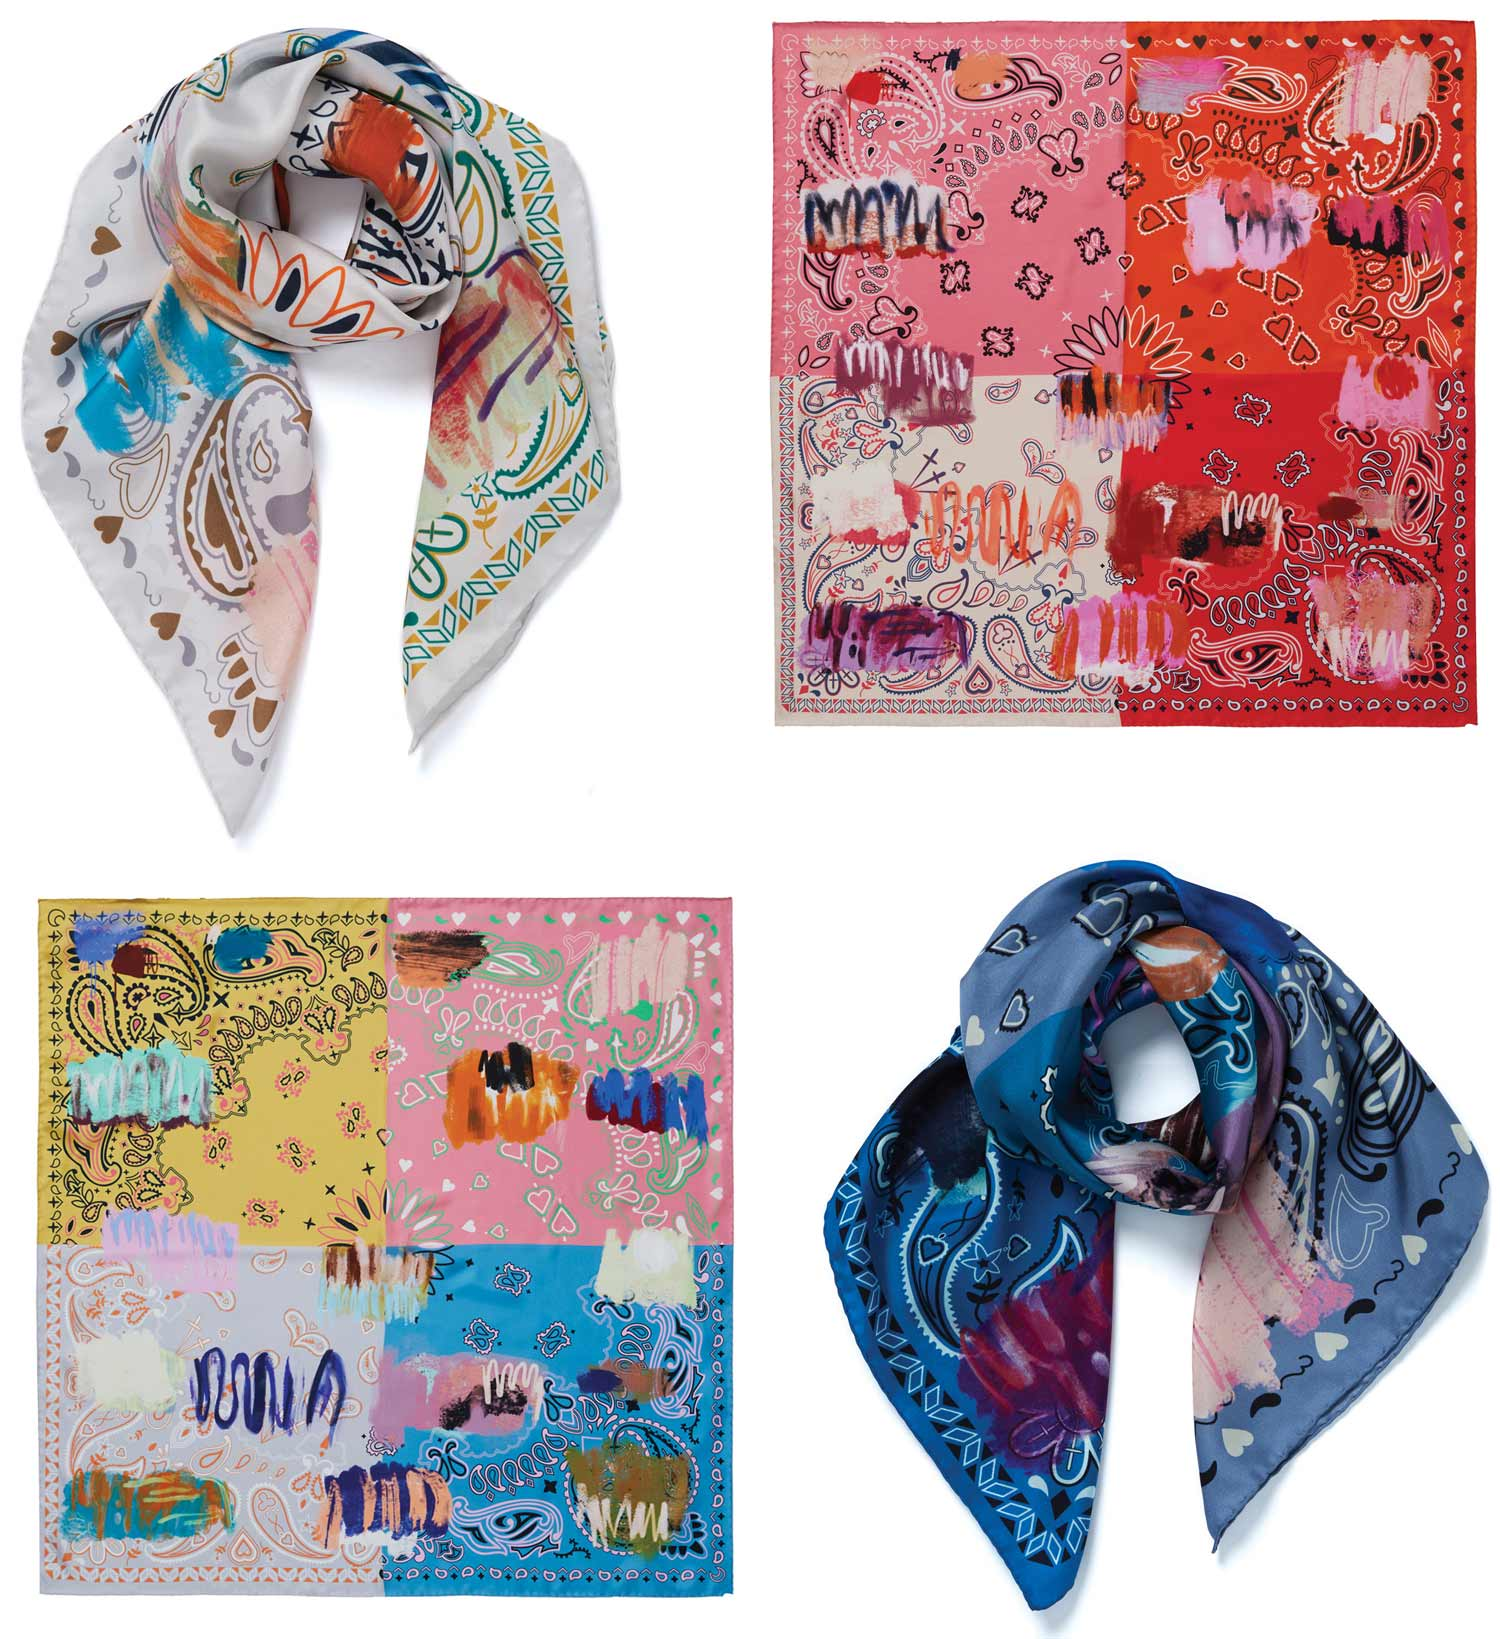 JANE CARR The Holiday Hotlist, Messy Bandana Foulard